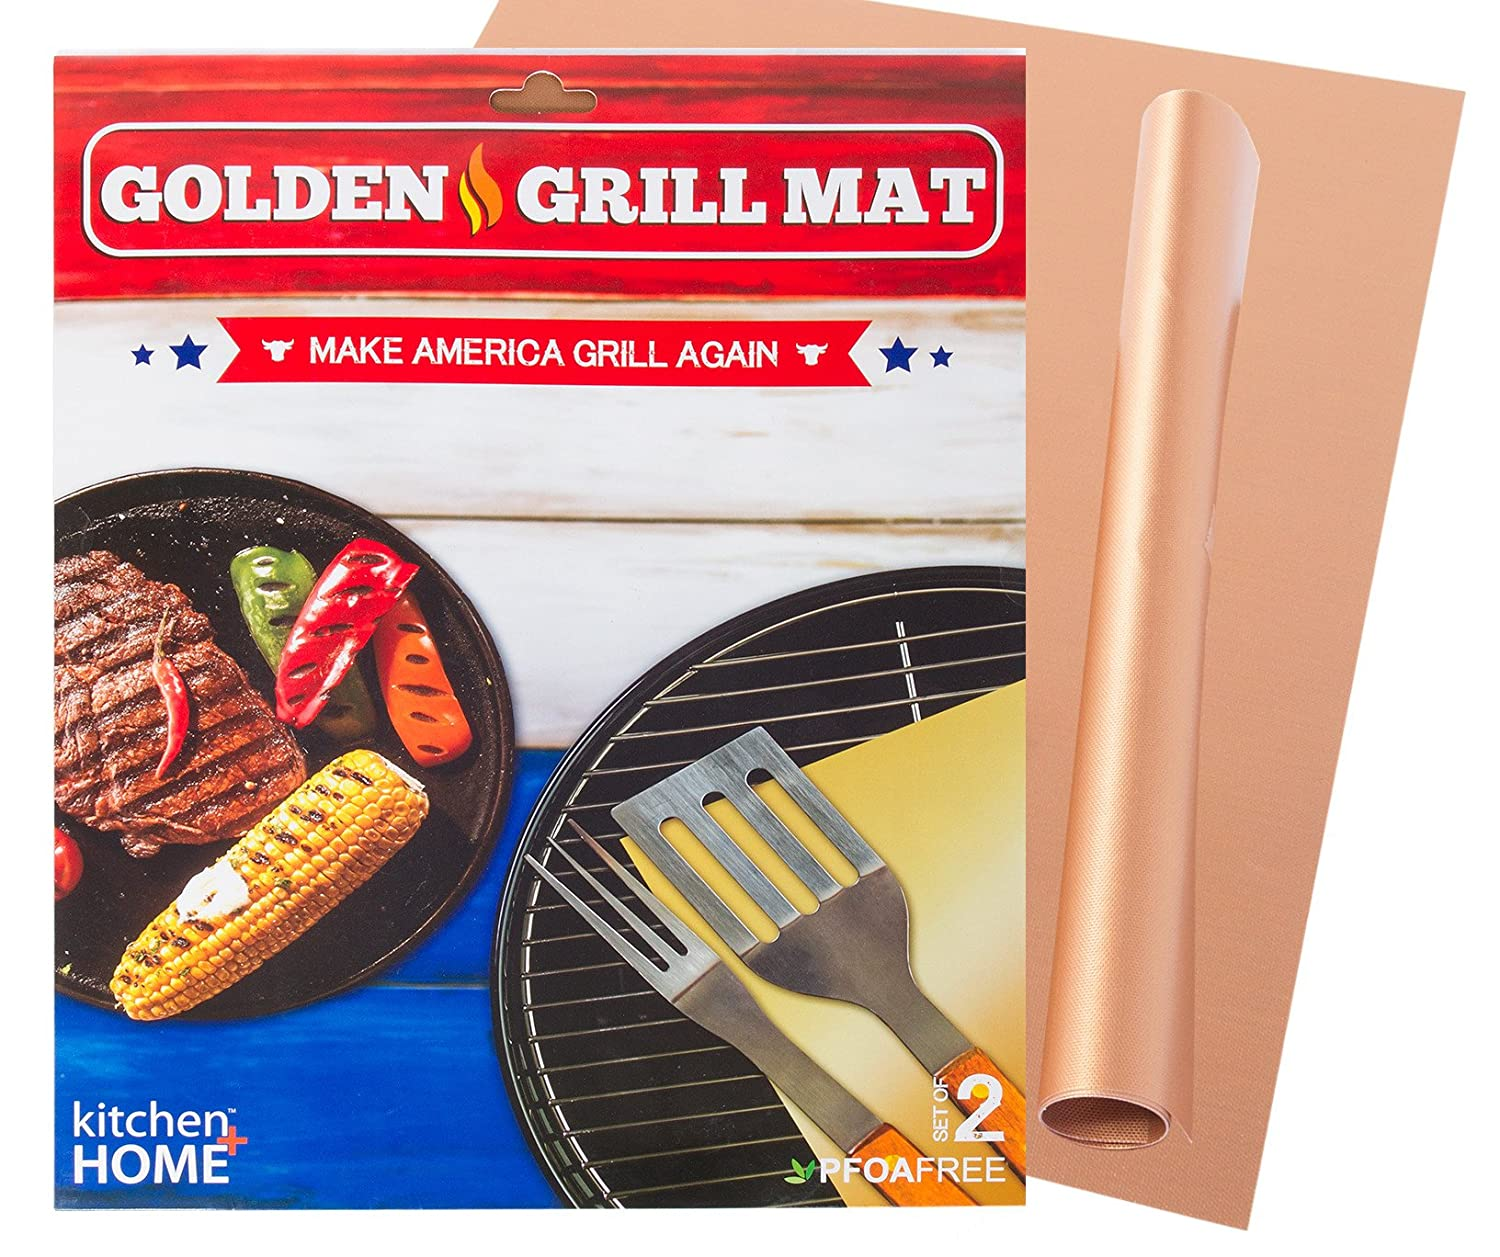 Kitchen Home Golden Grill Mat Make America Grill Again – Set of 2 Nonstick, Heavy Duty, Reusable, BPA PFOA Free BBQ Grill Baking Mats for Gas, Charcoal Electric Grills